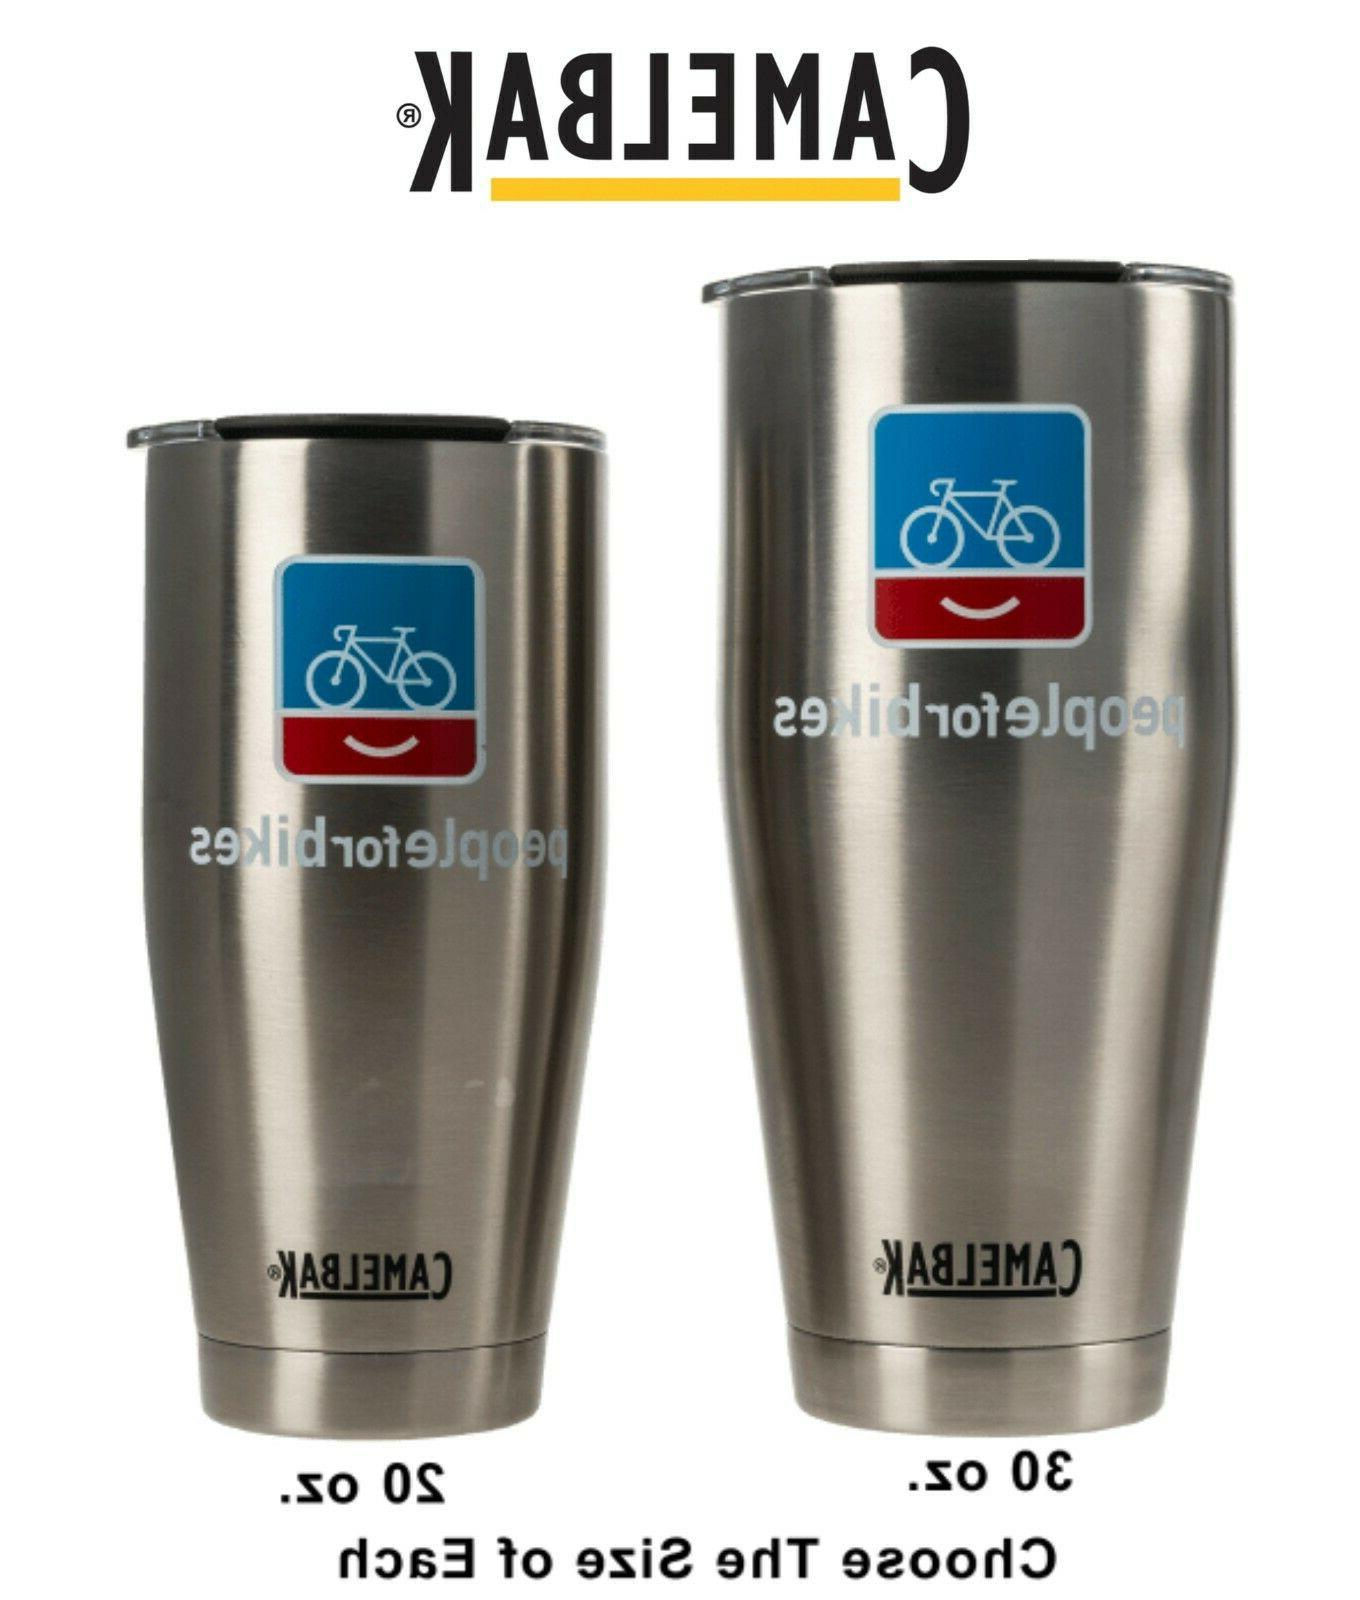 20oz 30oz stainless steel insulated tumbler coffee